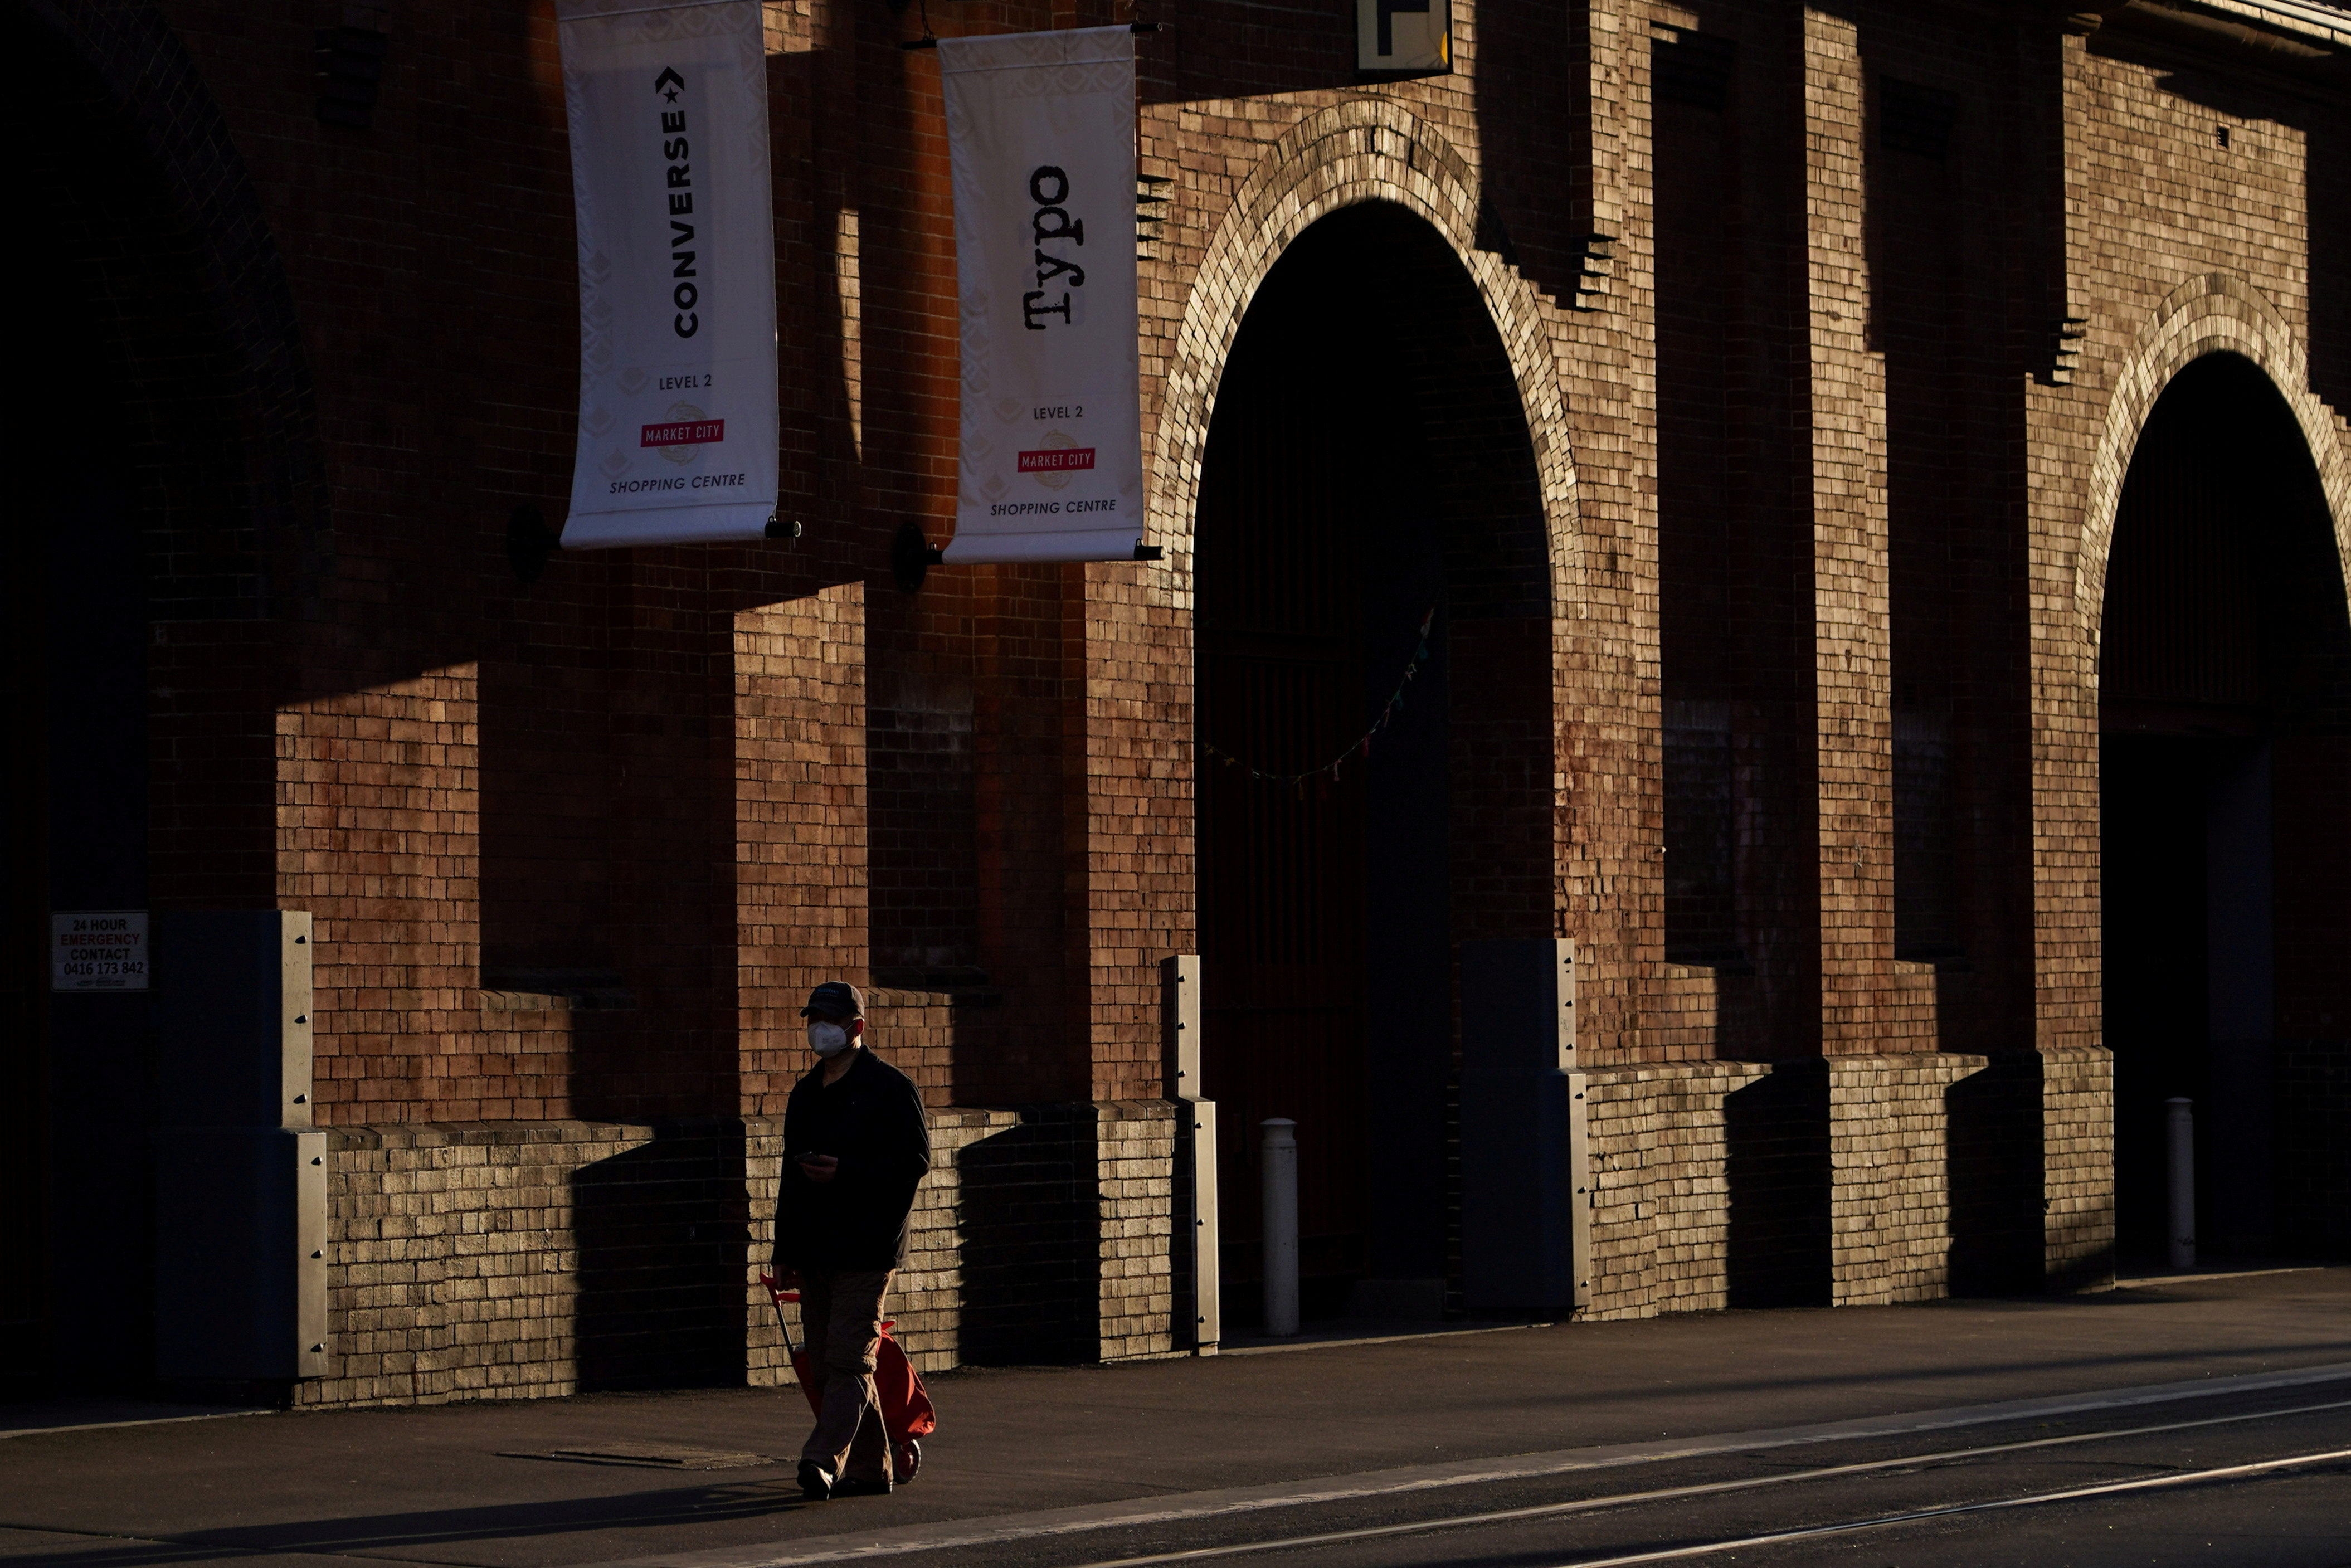 A man wearing a protective face mask walks past a usually busy market in the city centre during a lockdown to curb the spread of a coronavirus disease (COVID-19) outbreak in Sydney, Australia, August 31, 2021. REUTERS/Loren Elliott/File Photo